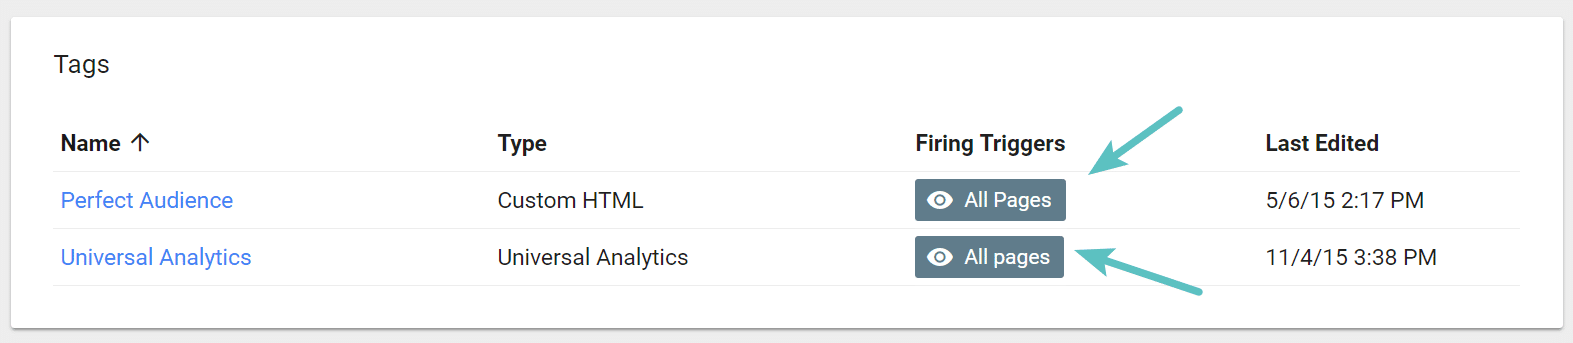 Google Tag Manager firing triggers